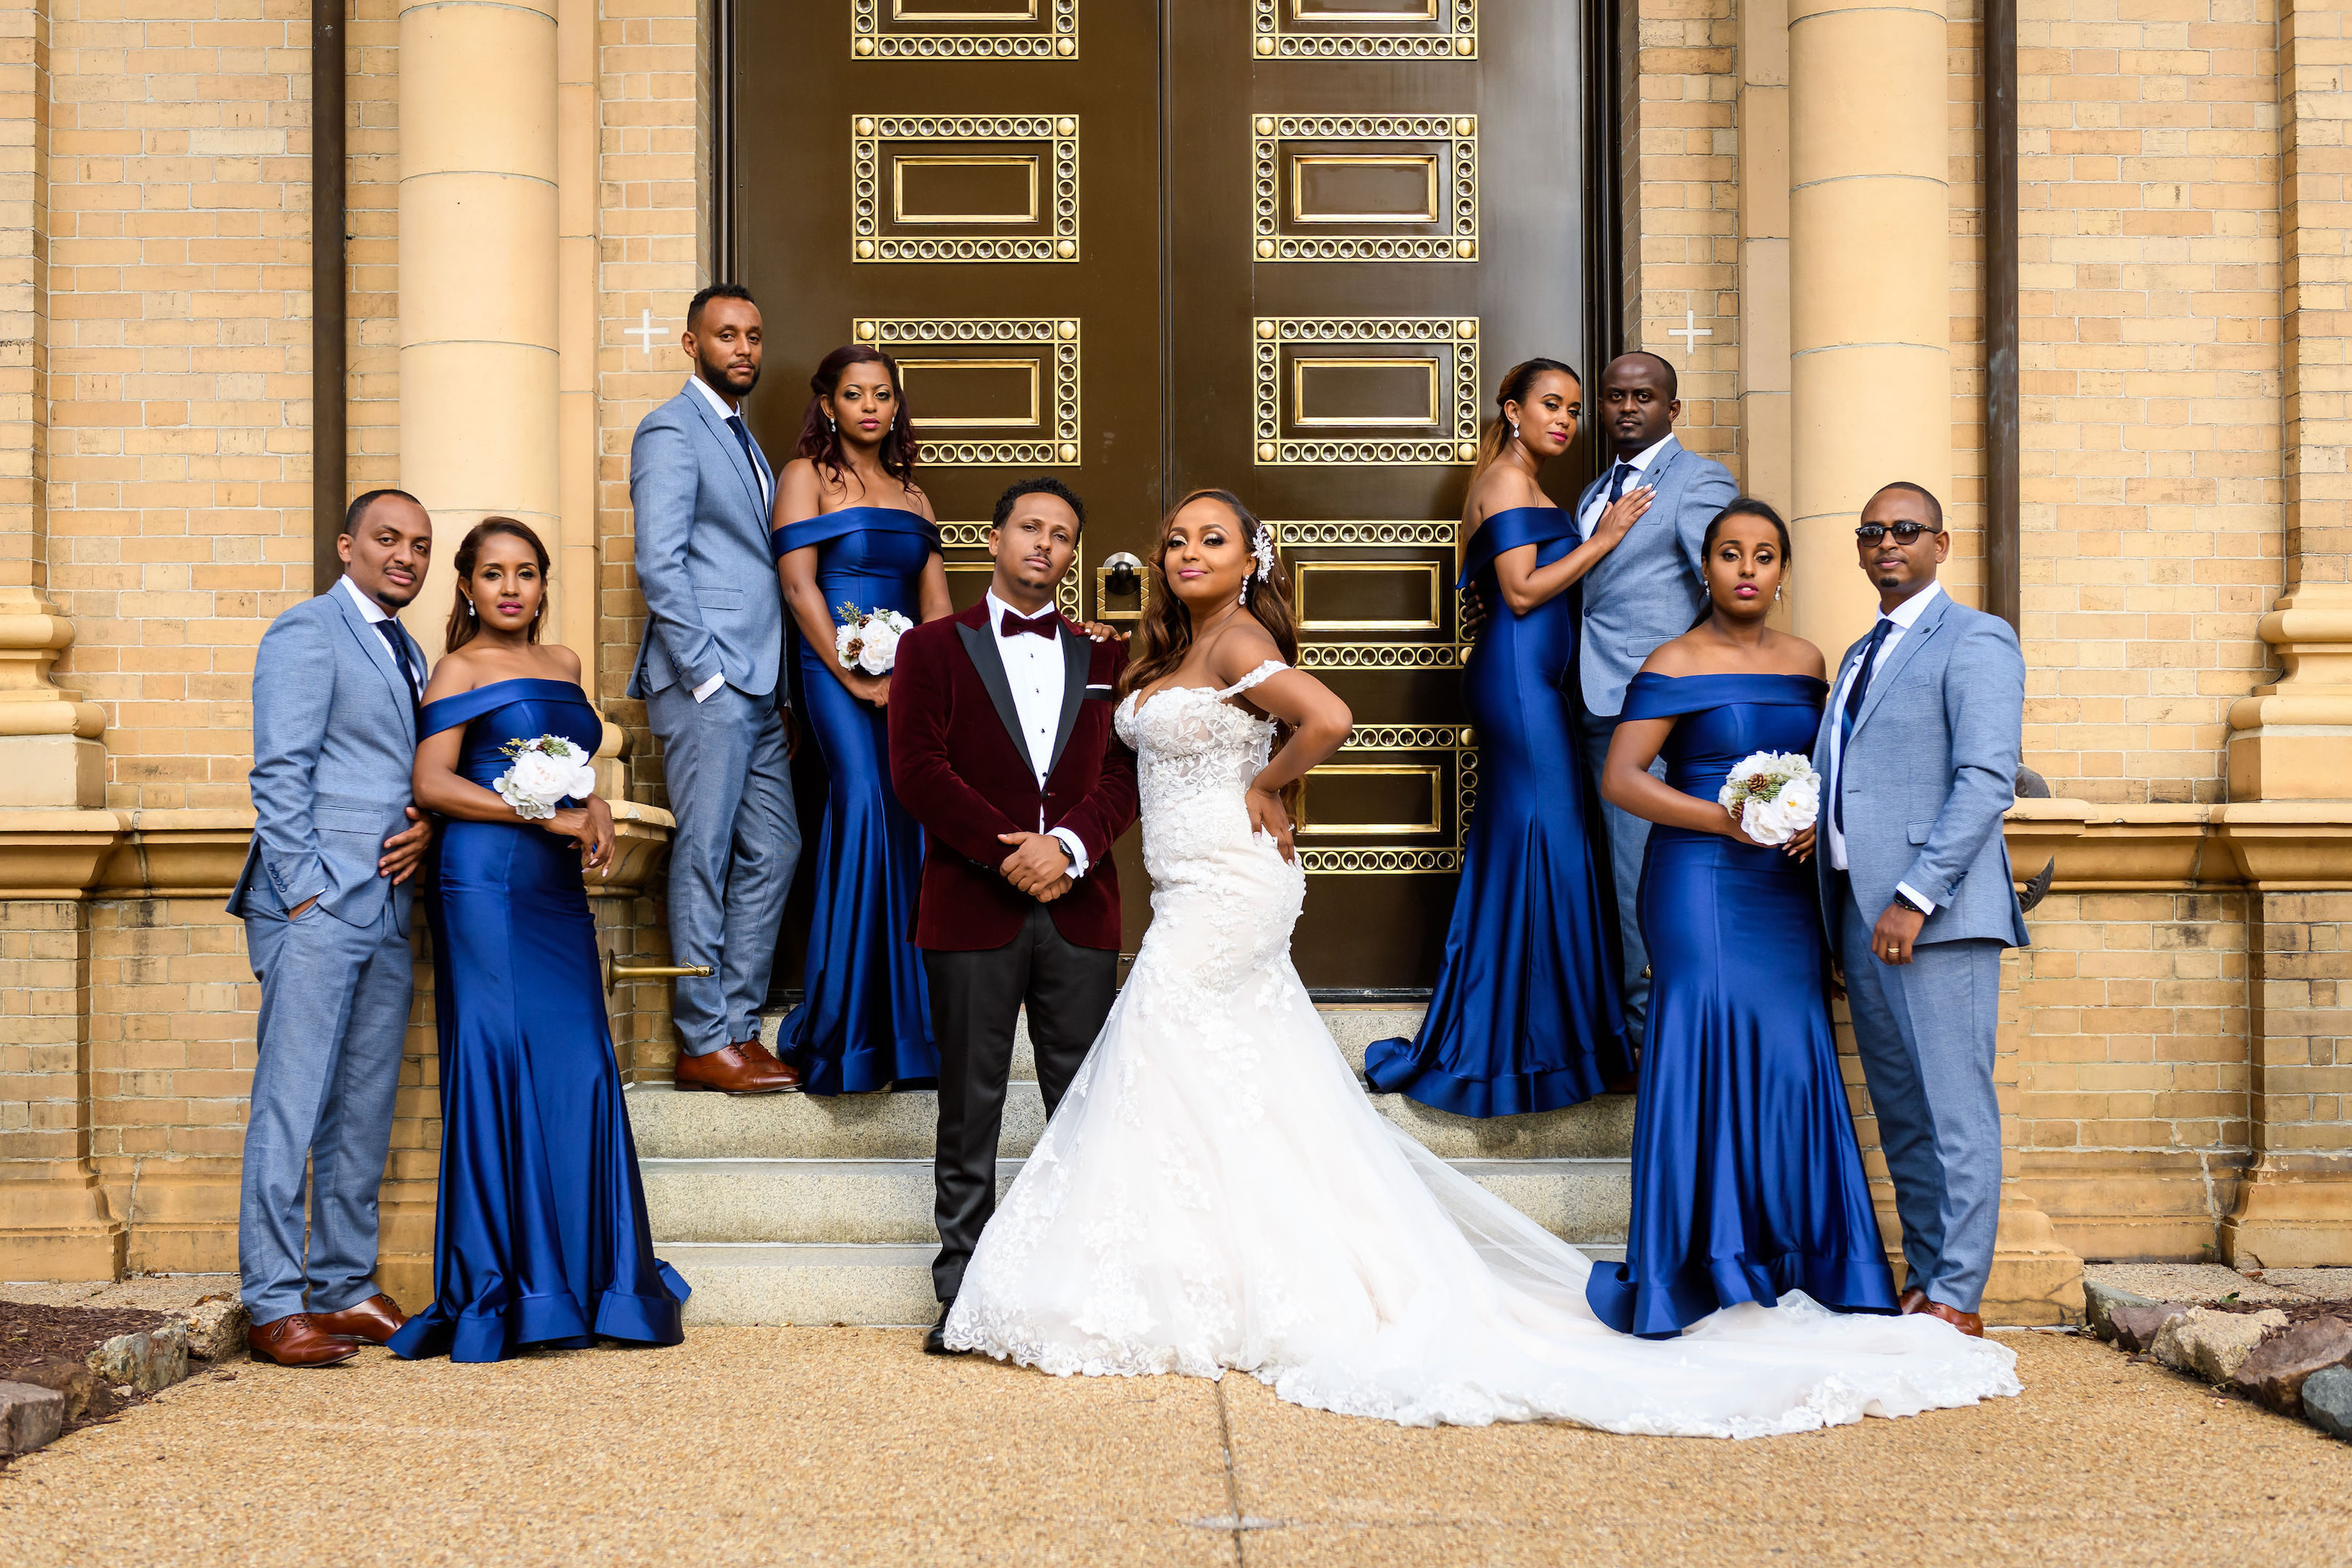 A Gorgeous Habesha Wedding On An Equally Perfect Fall Day In Washington DC